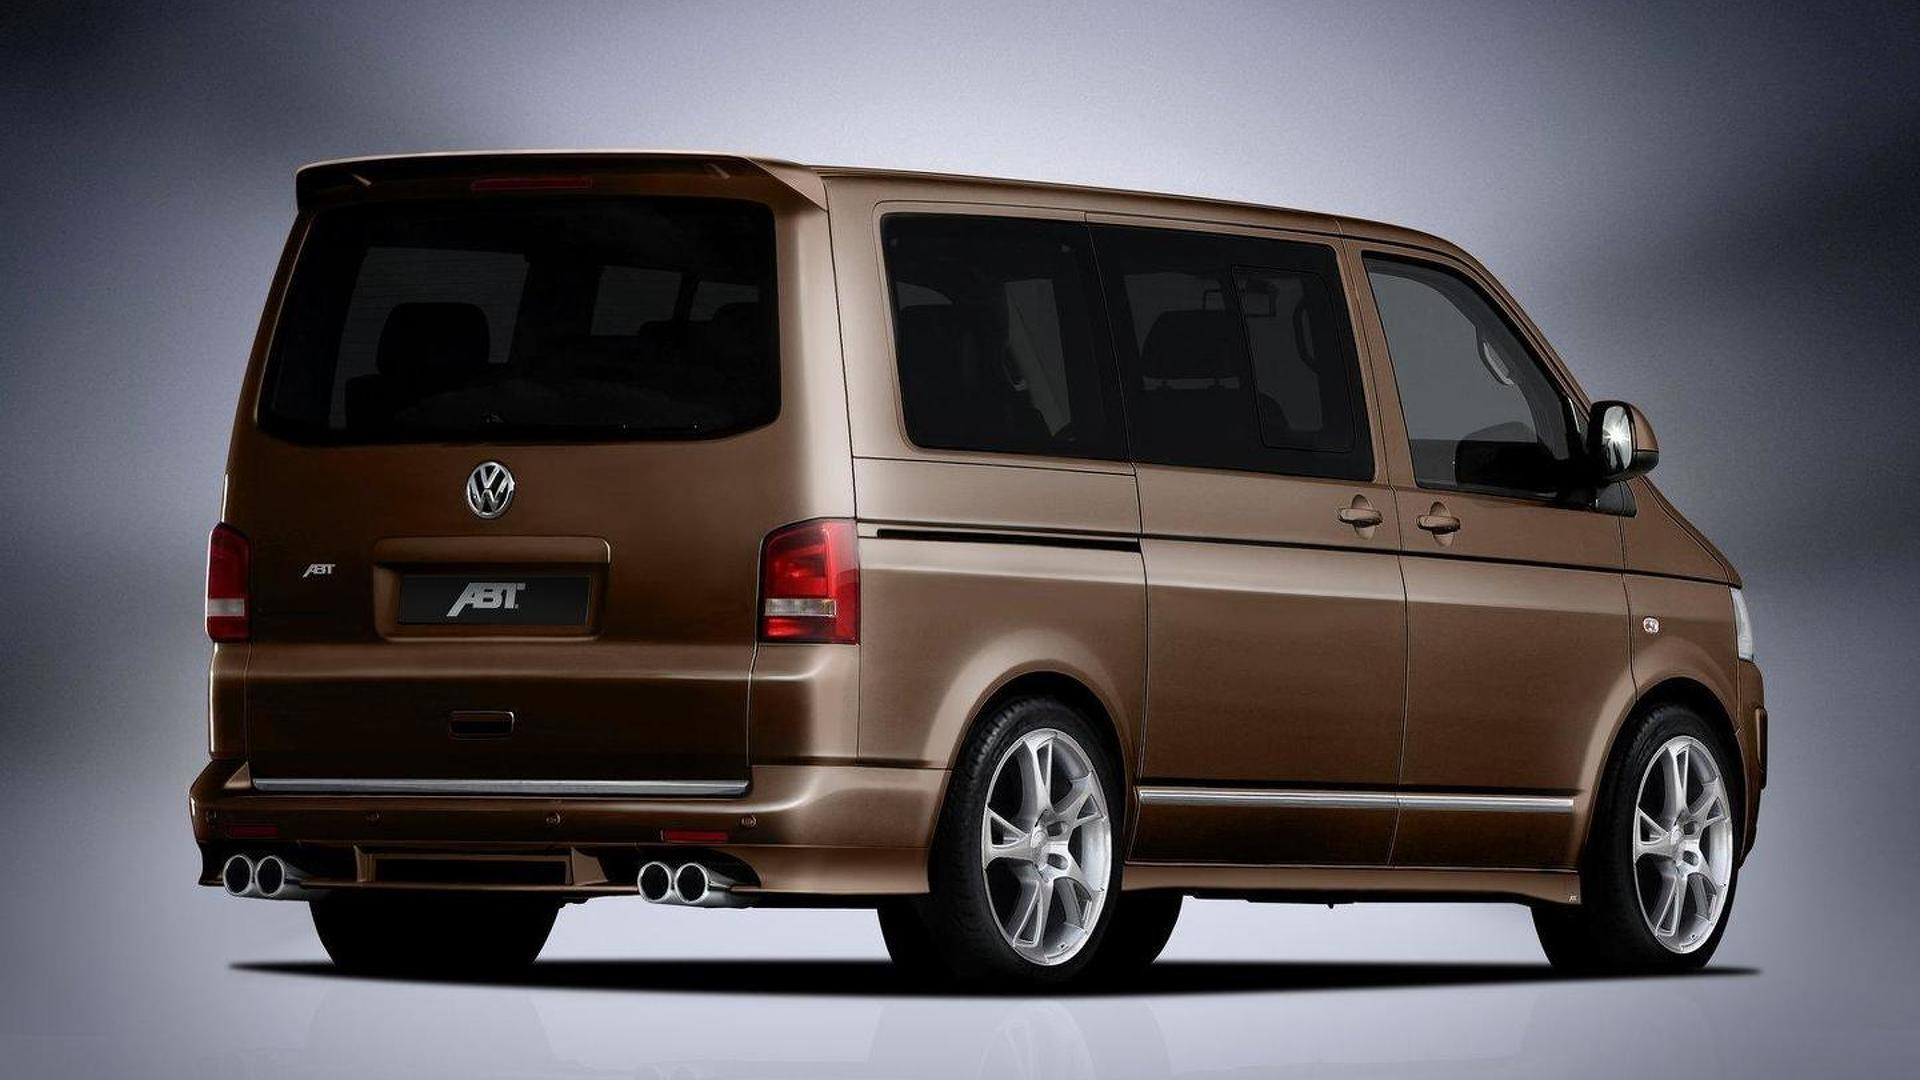 abt sportsline updates styling kit for vw t5 van facelift. Black Bedroom Furniture Sets. Home Design Ideas